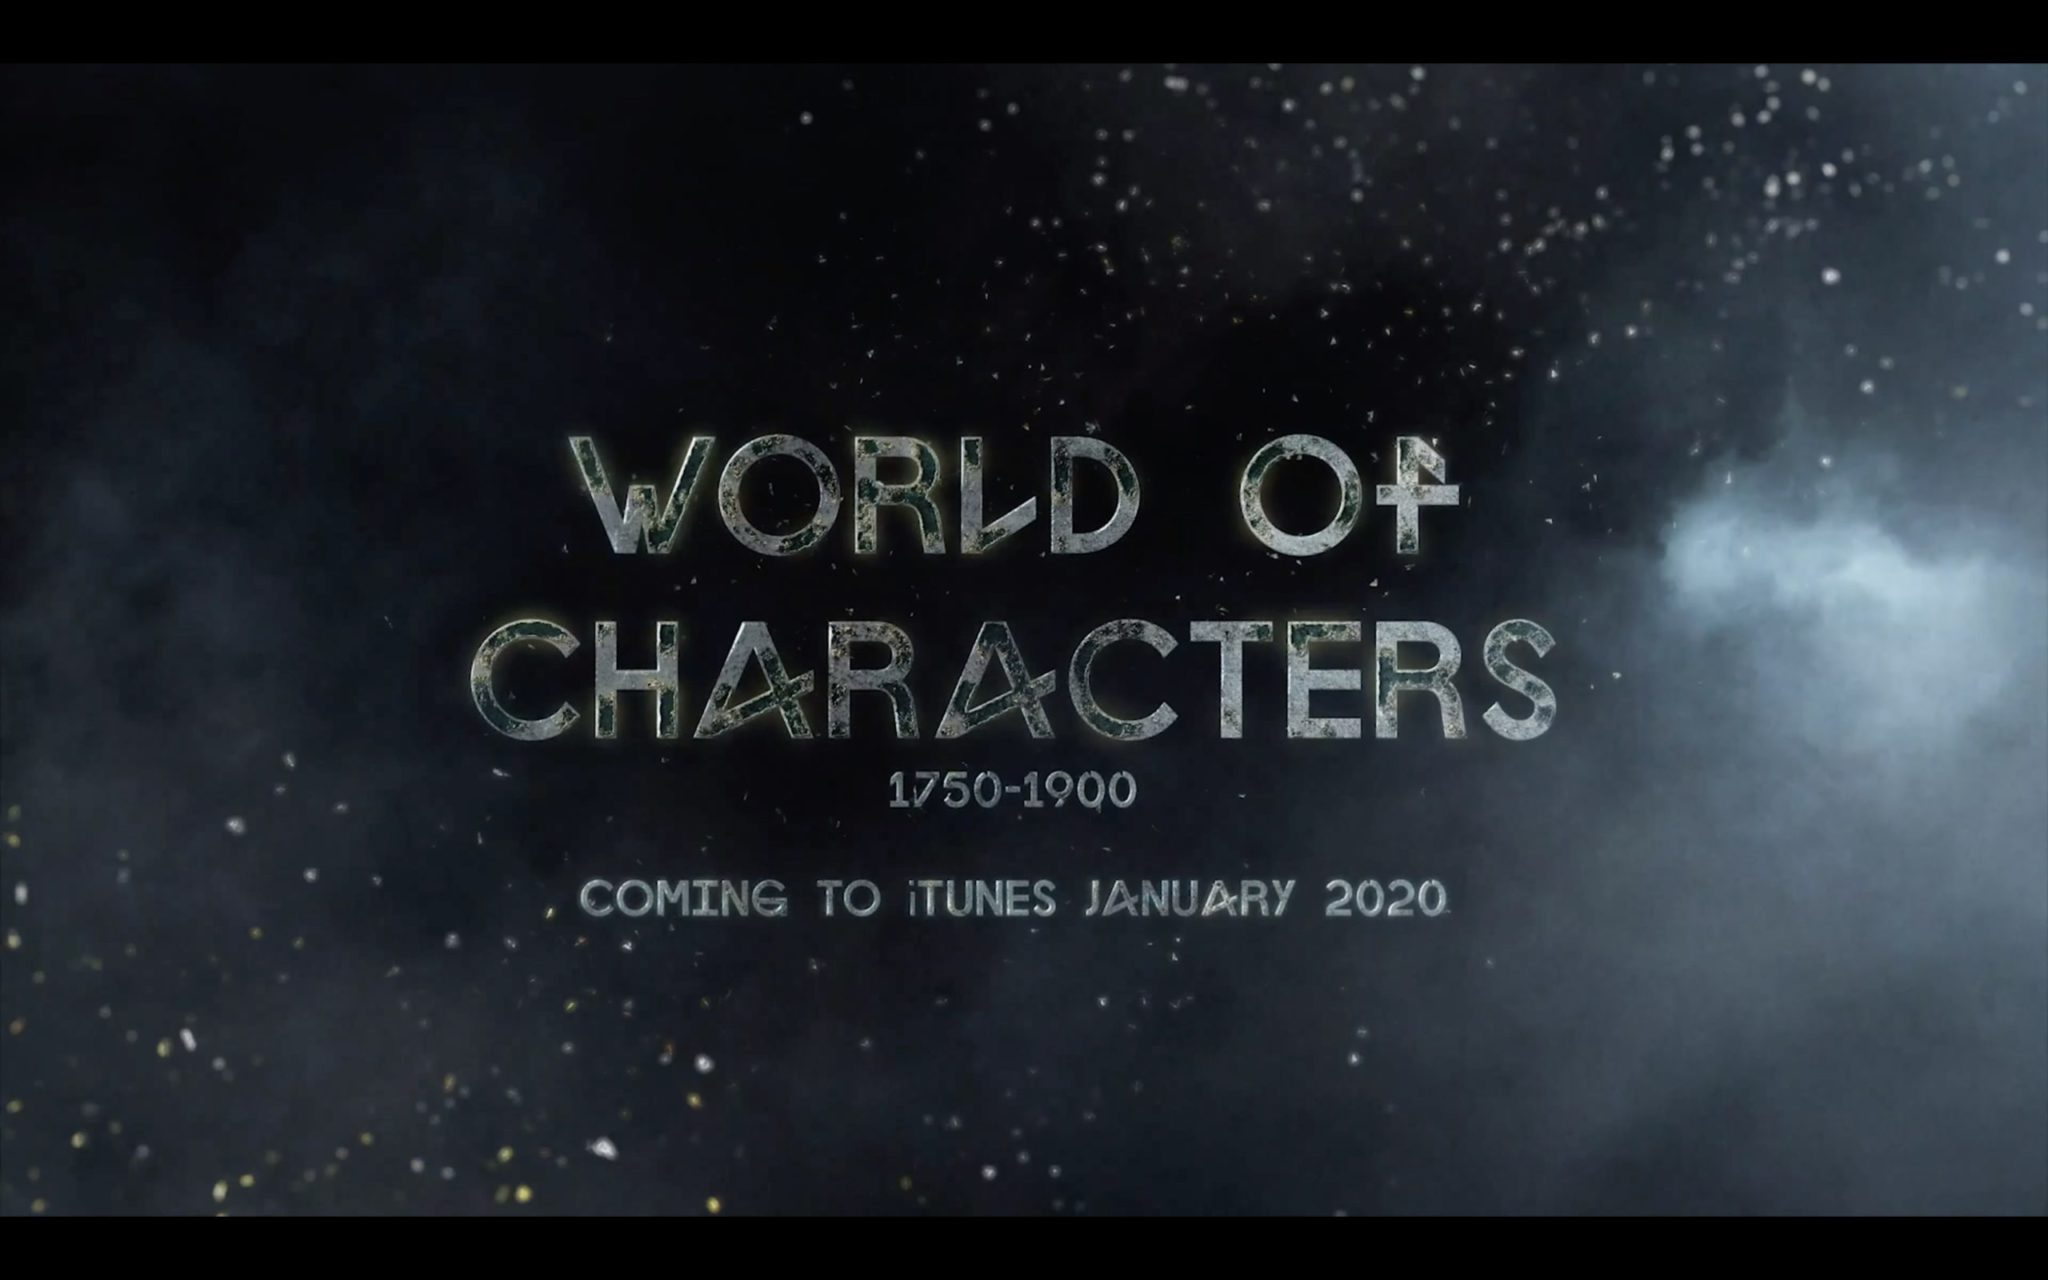 Introducing the official launch trailer! History Adventures, World of Characters, Book 3, (1750-1900), presents a fresh approach to history education, designed for today's digital generation. This interactive, multimodal learning experience combines the latest in mobile entertainment with the power of narrative design—bringing the pages of history to life.